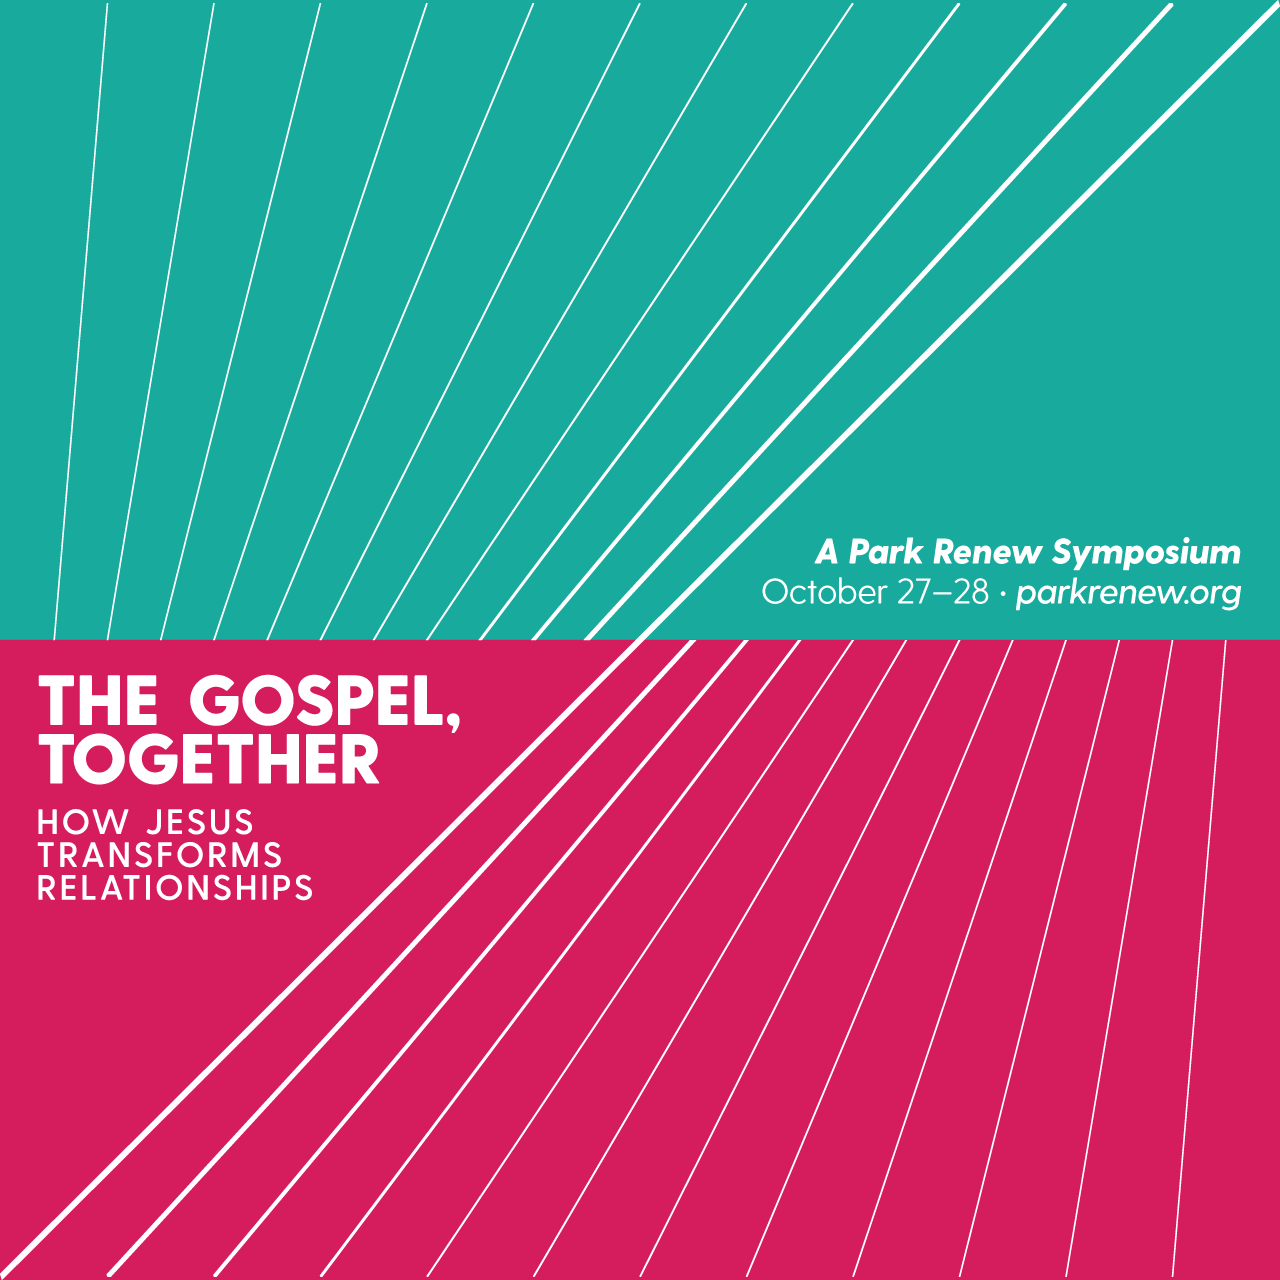 The Gospel, Together